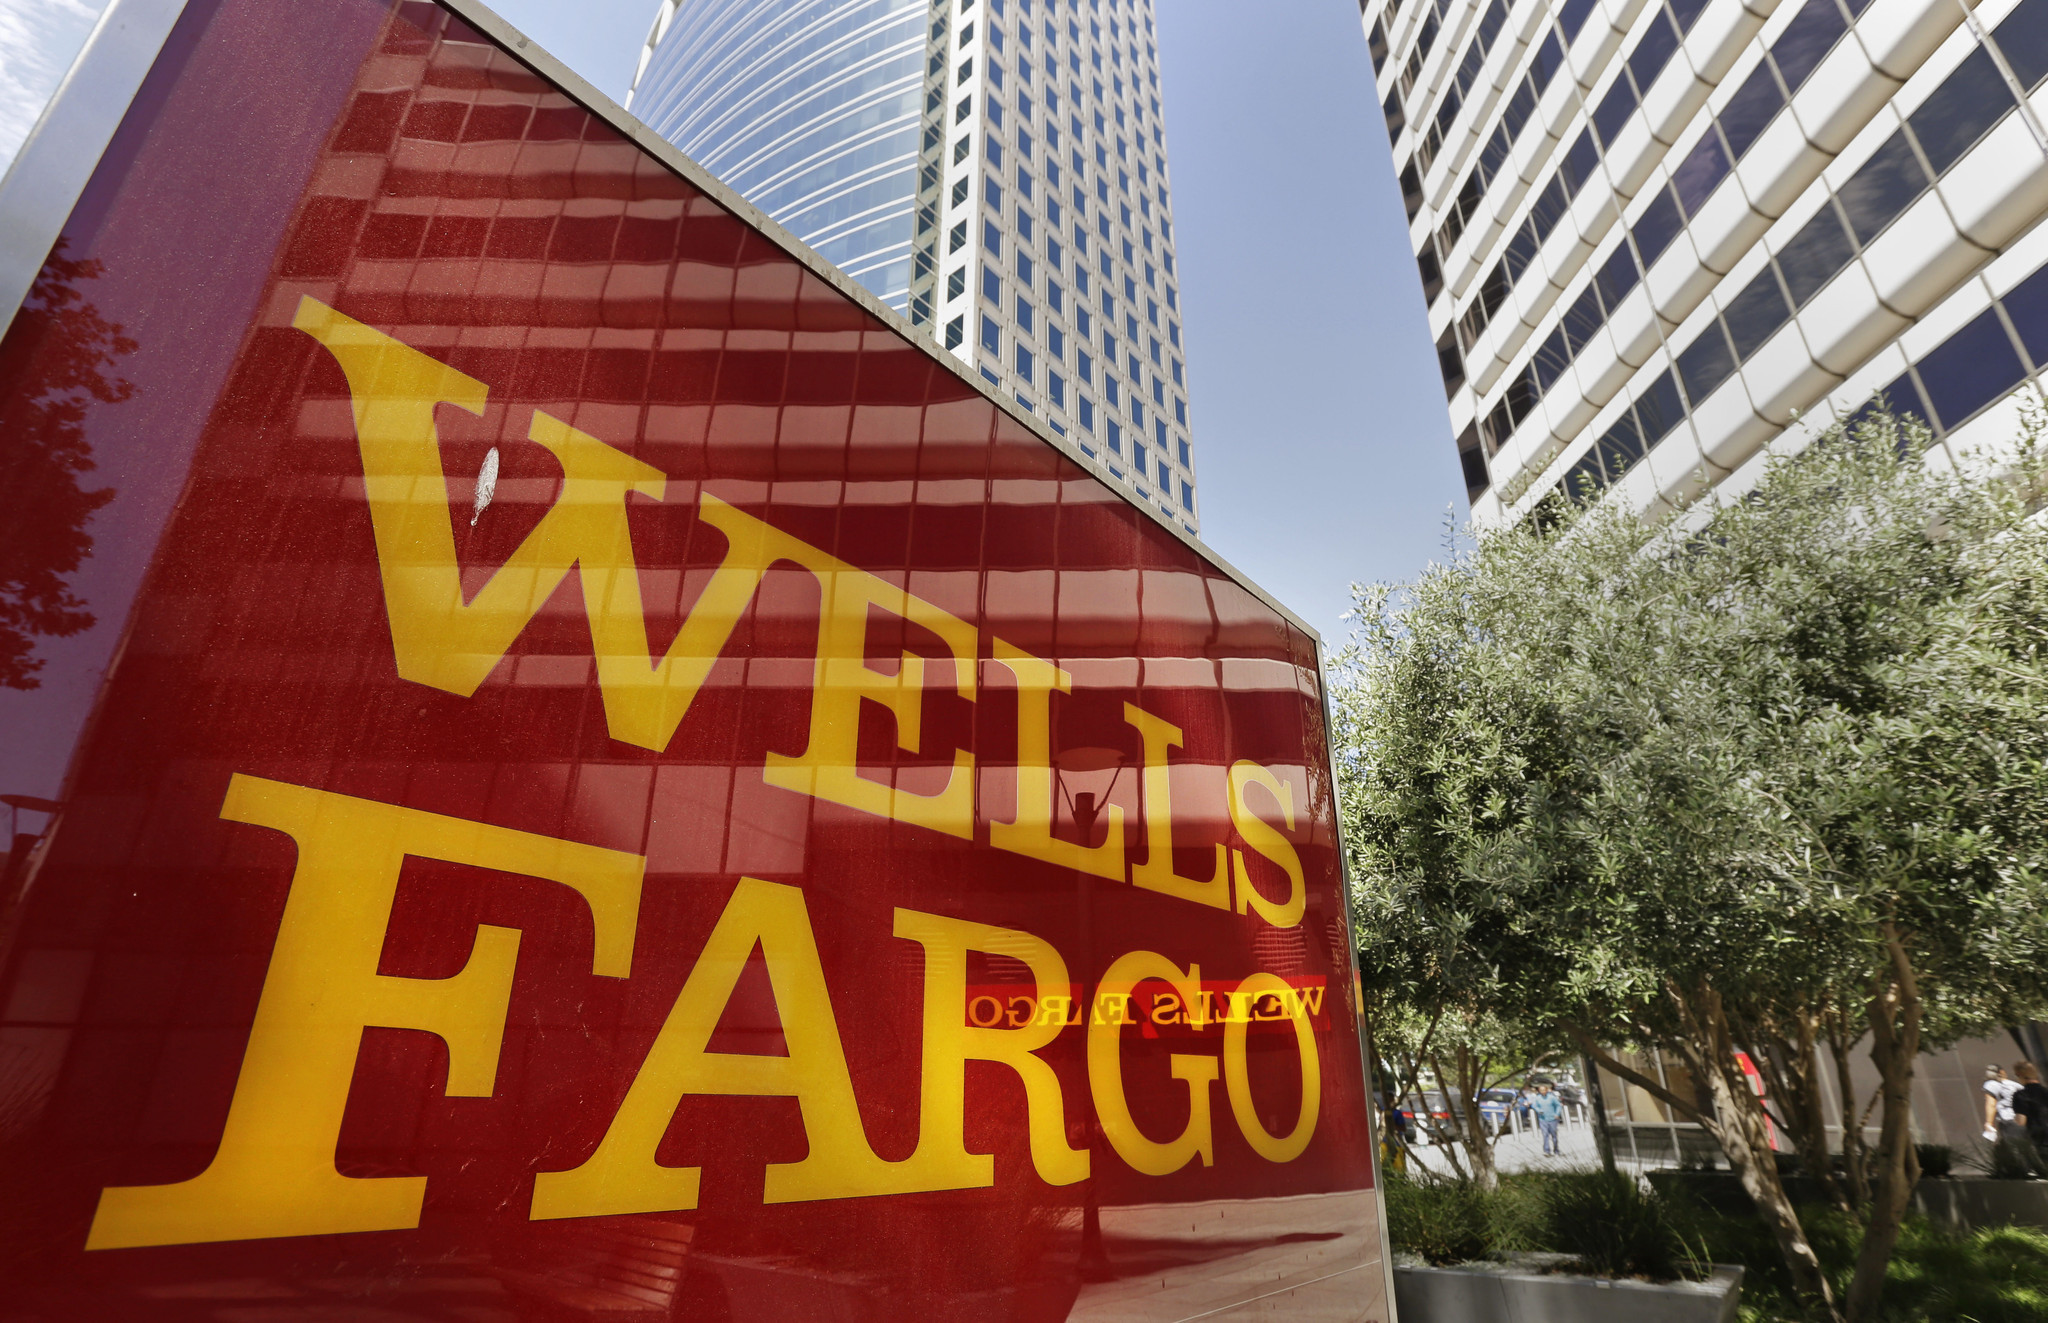 Wells Fargo customers: Here's what to look for if you're concerned